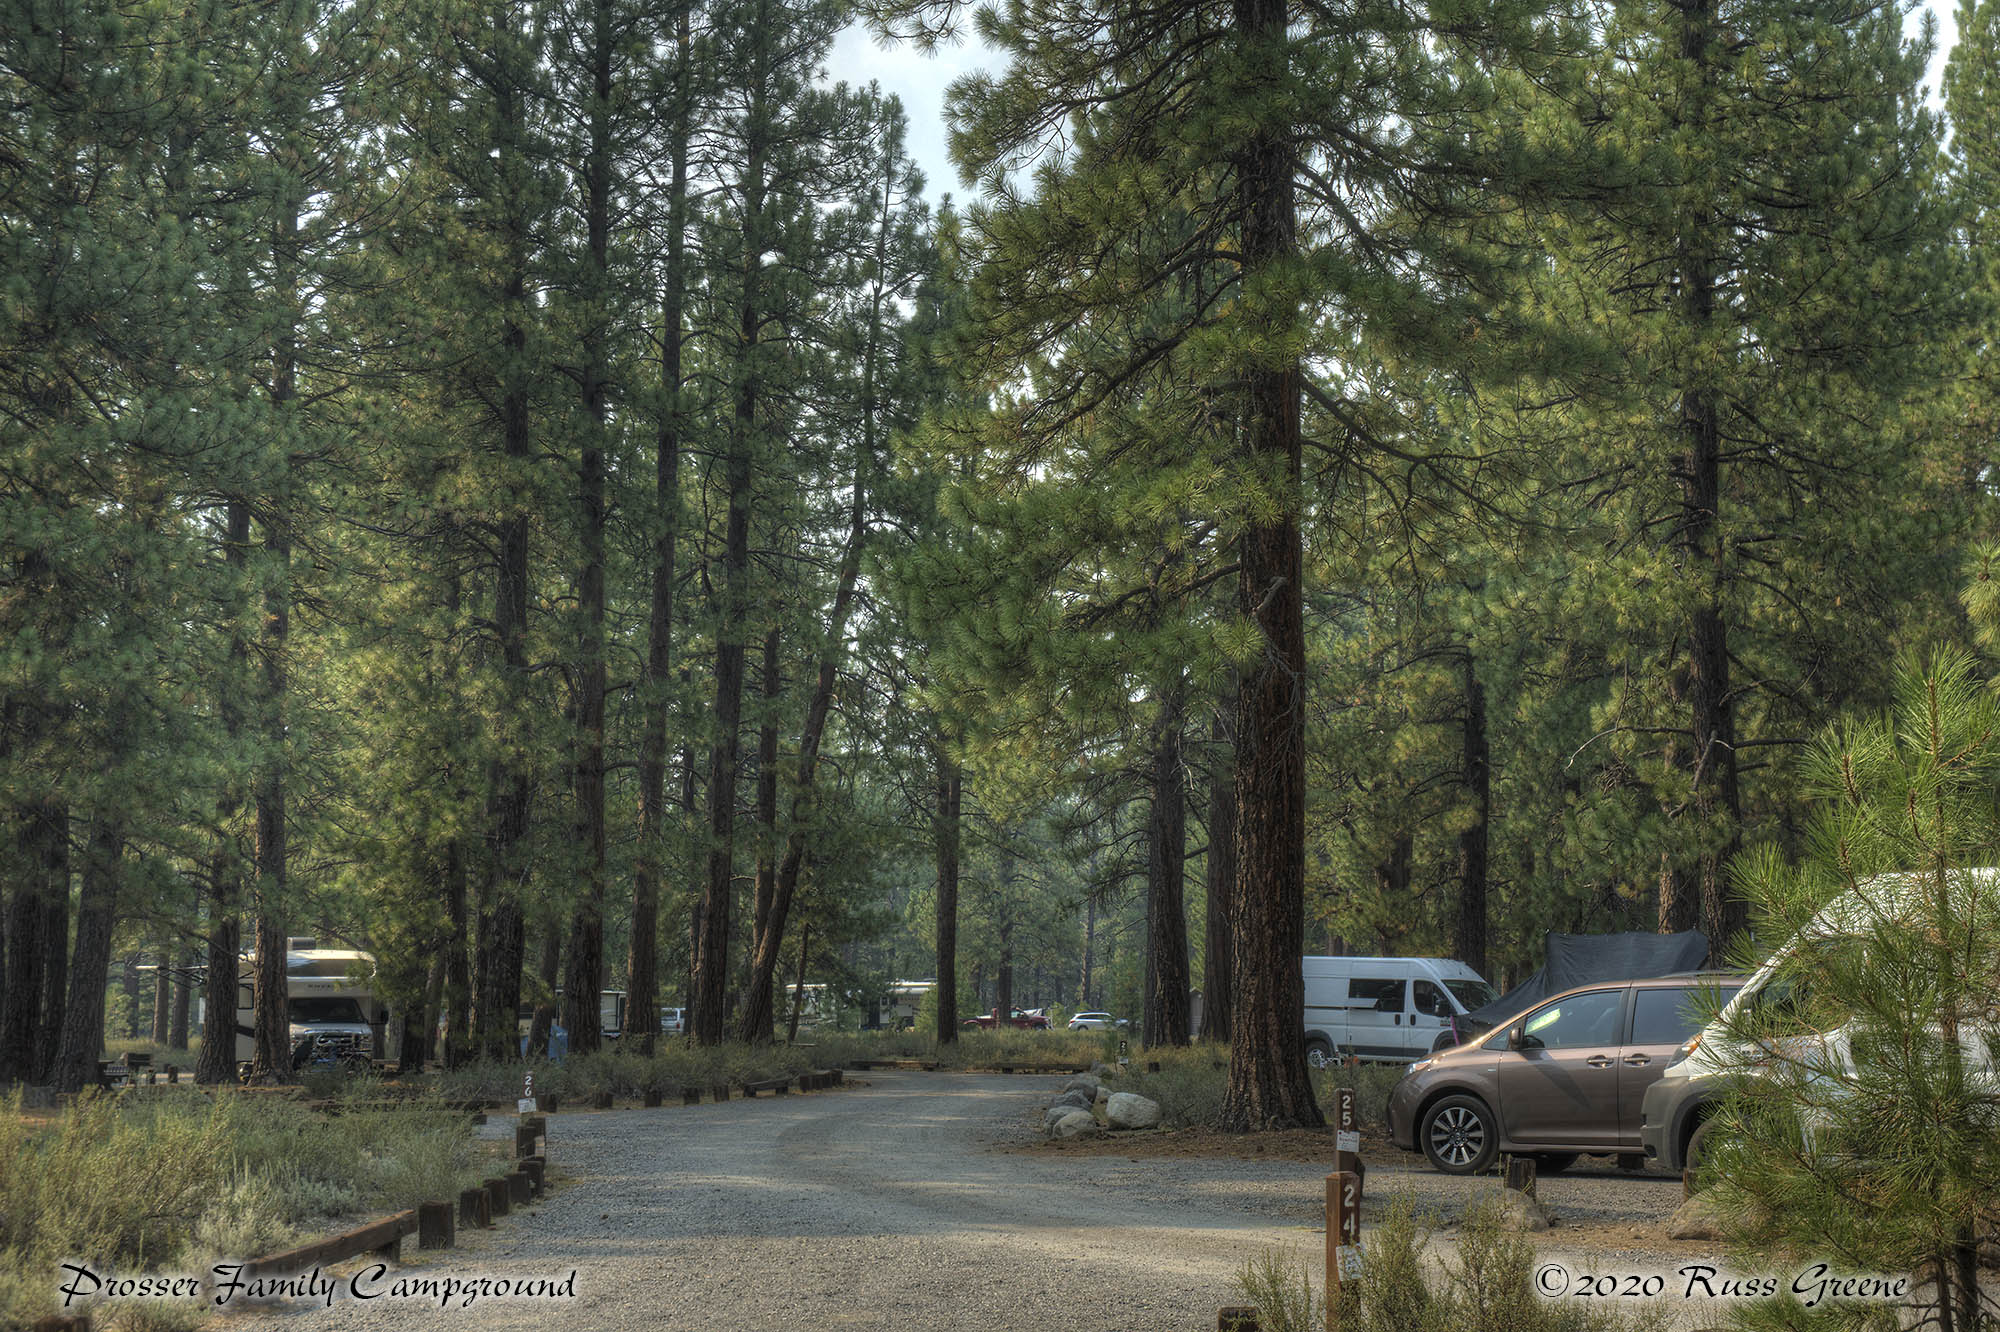 A view down the campground from site 23 at Prosser Family Campgound